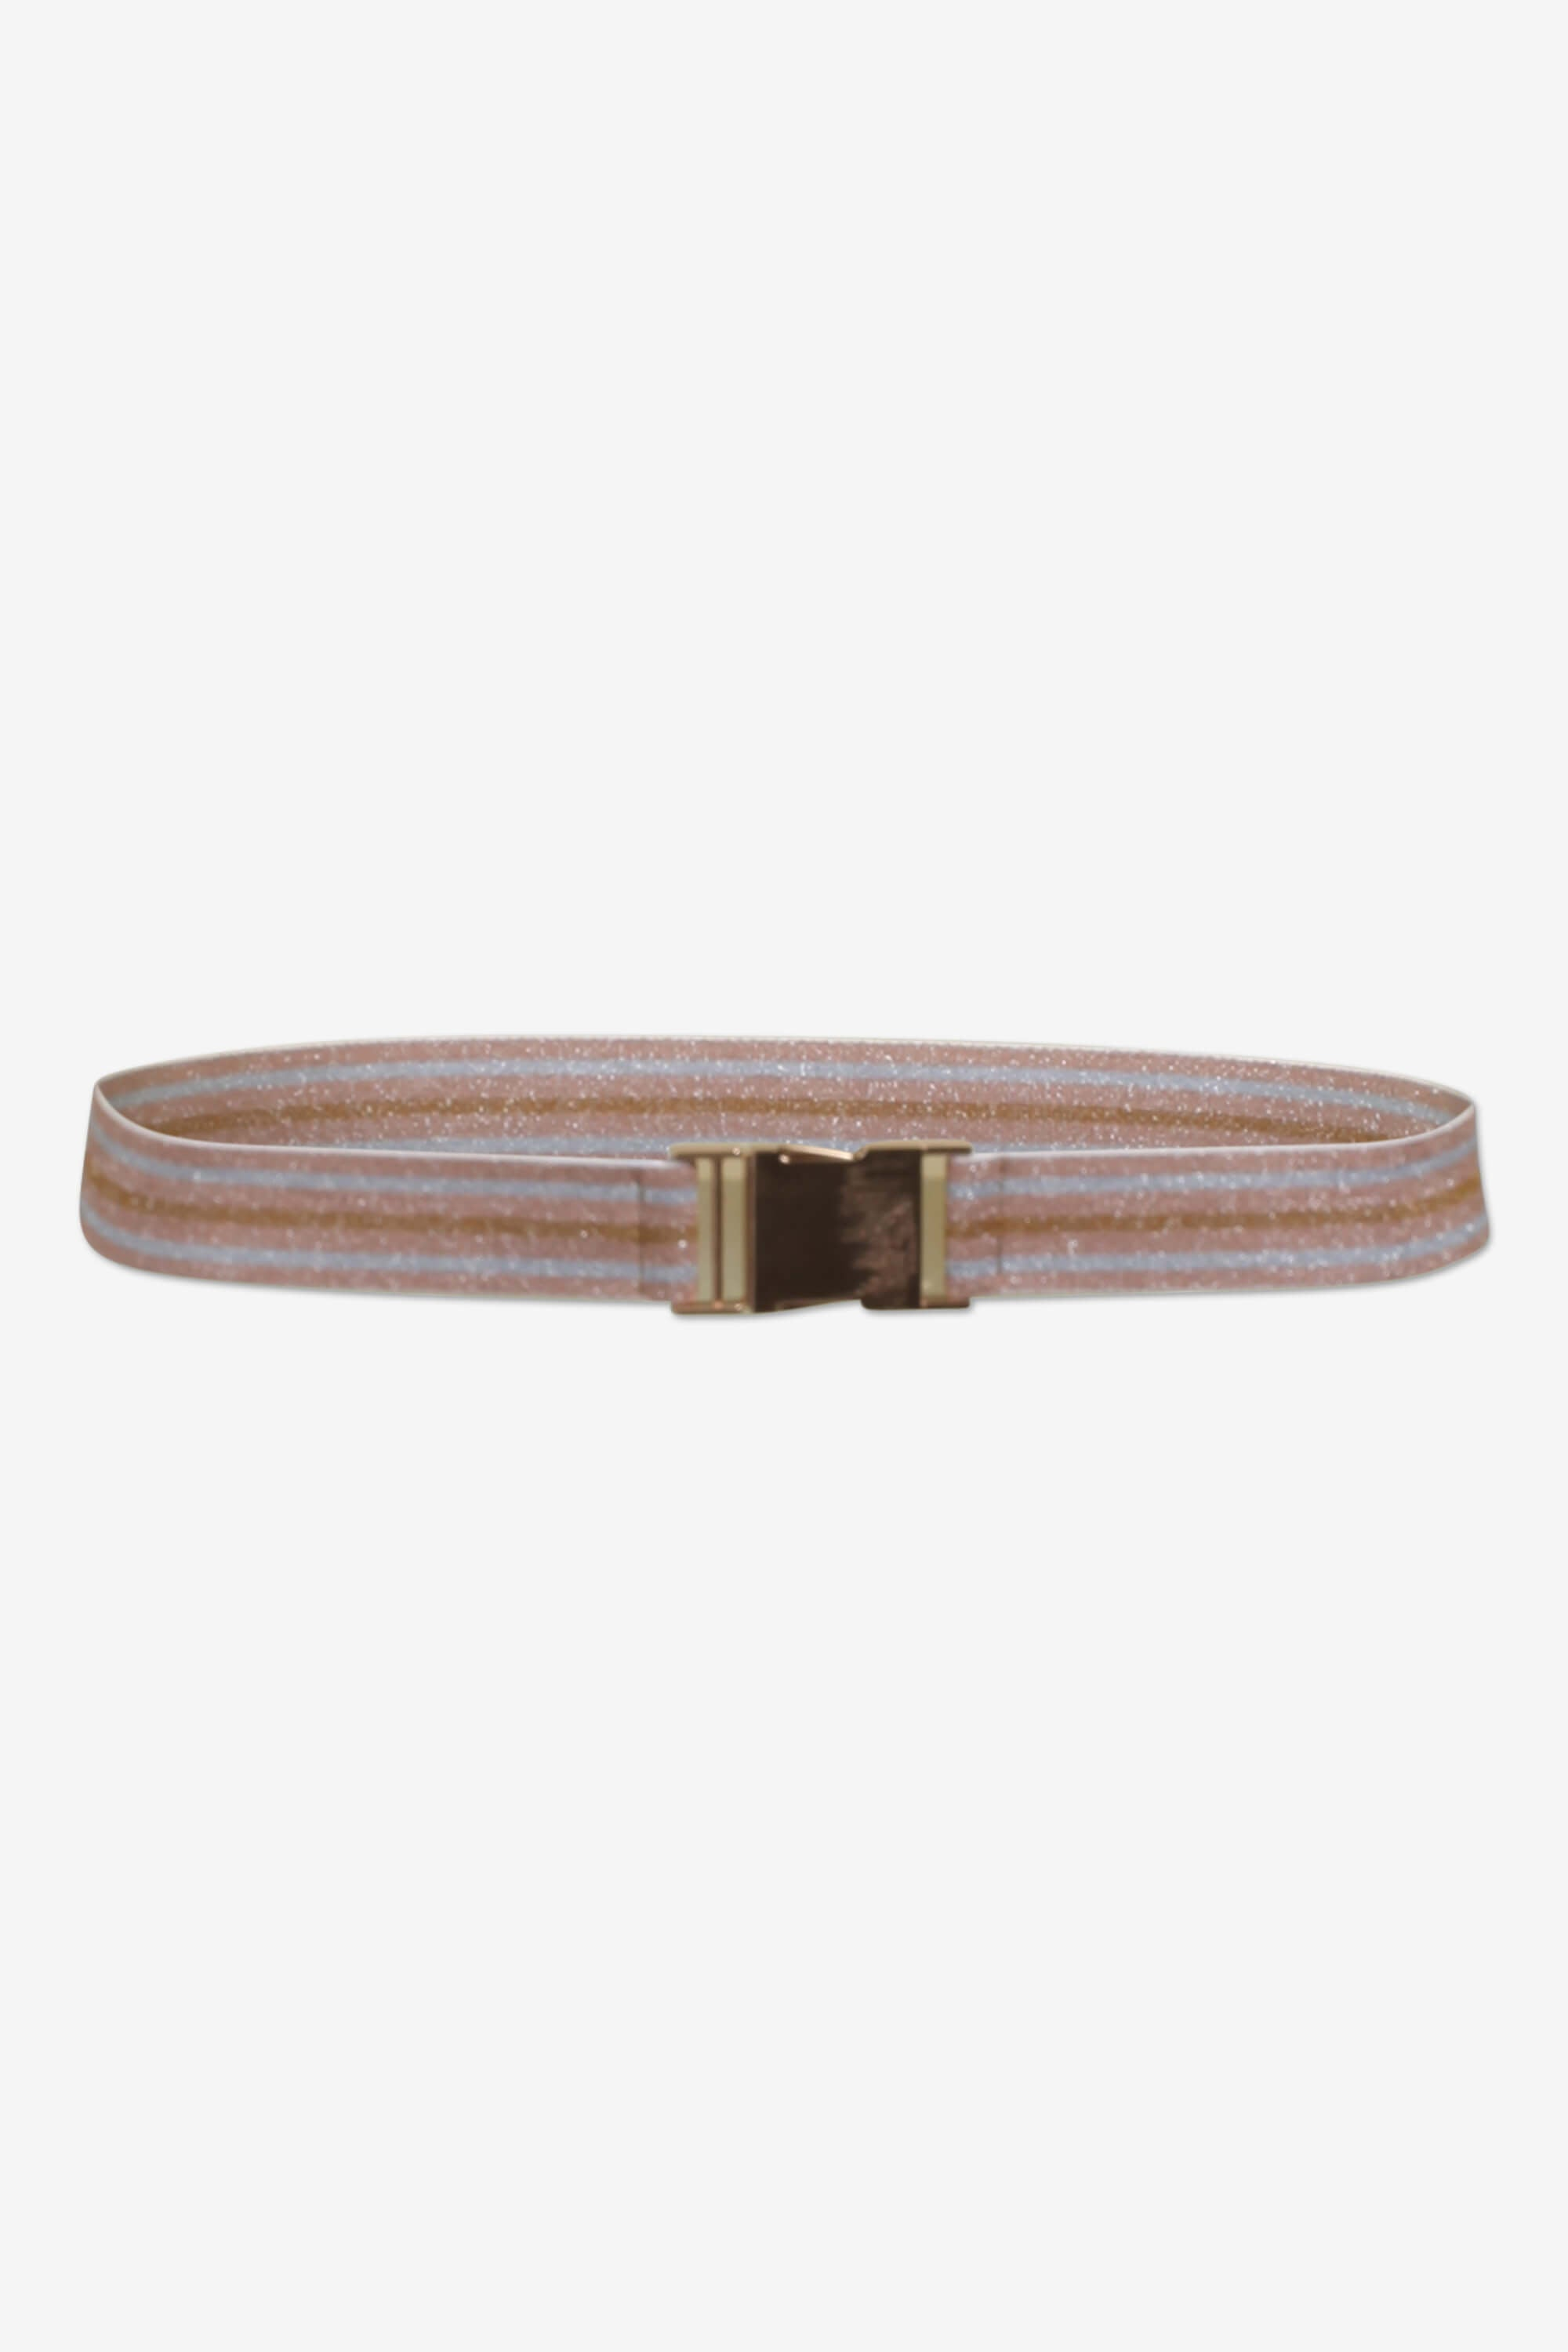 BUP Lilia belt in rose, brown, blue